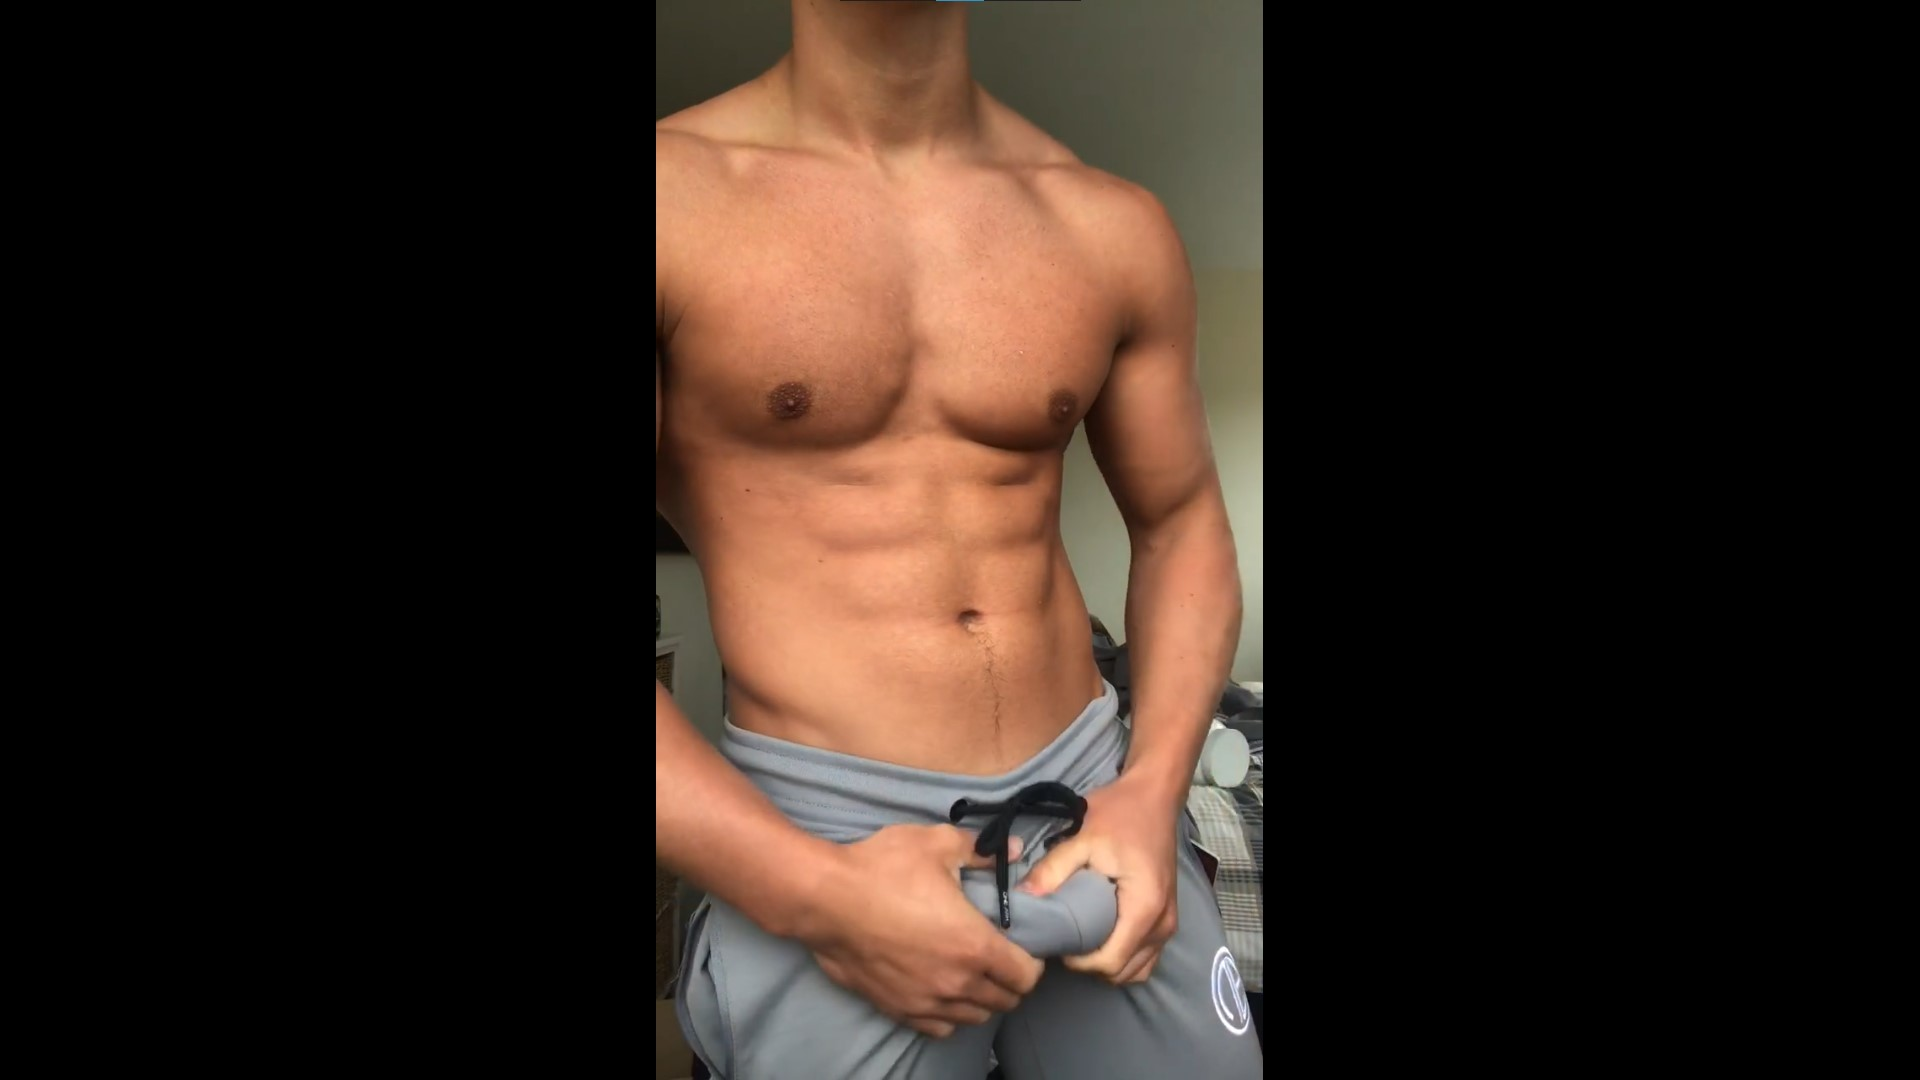 Showing off my body and feeling my cock - RippedMaxim